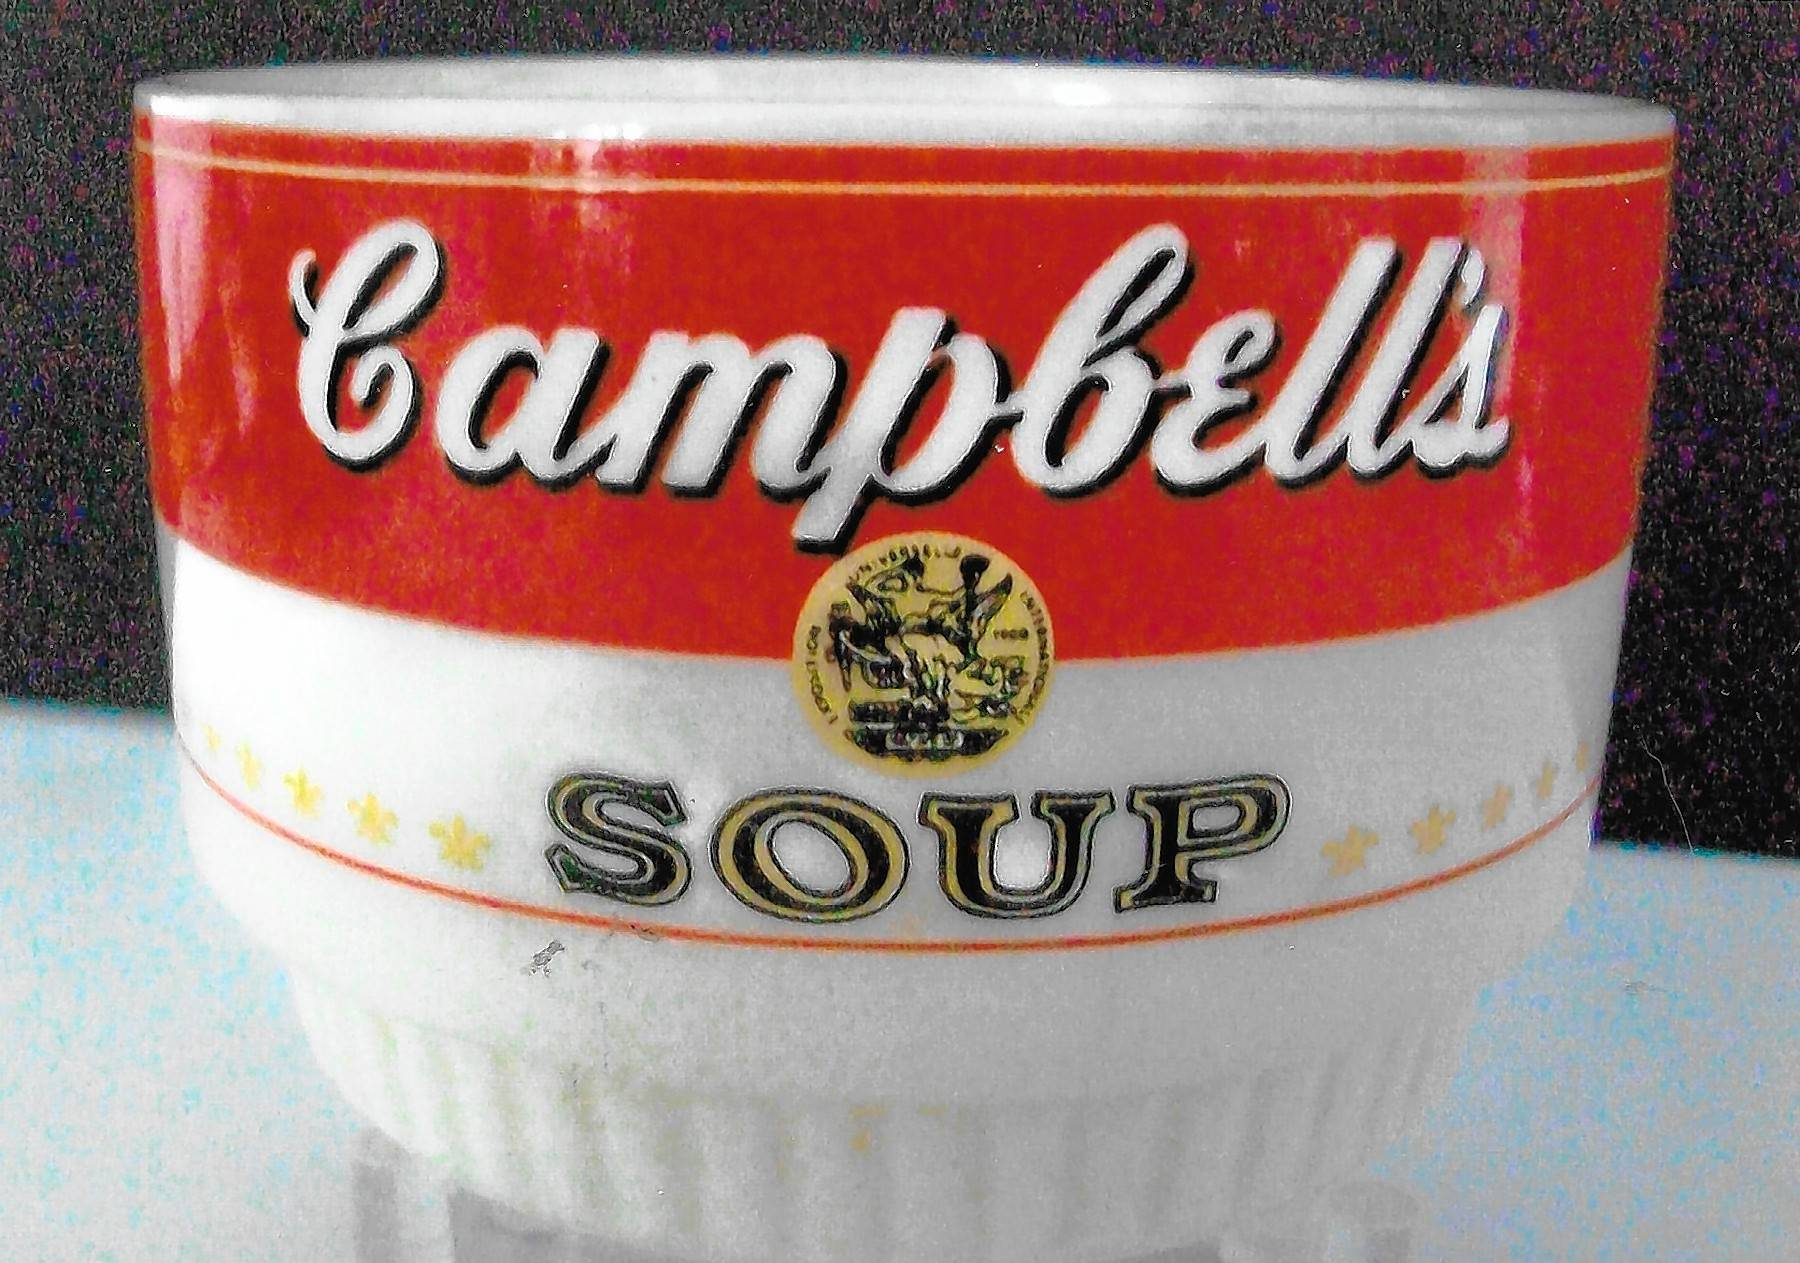 Campbell Soup Company won an award at the 1900 Exposition Universelle in Paris, France.